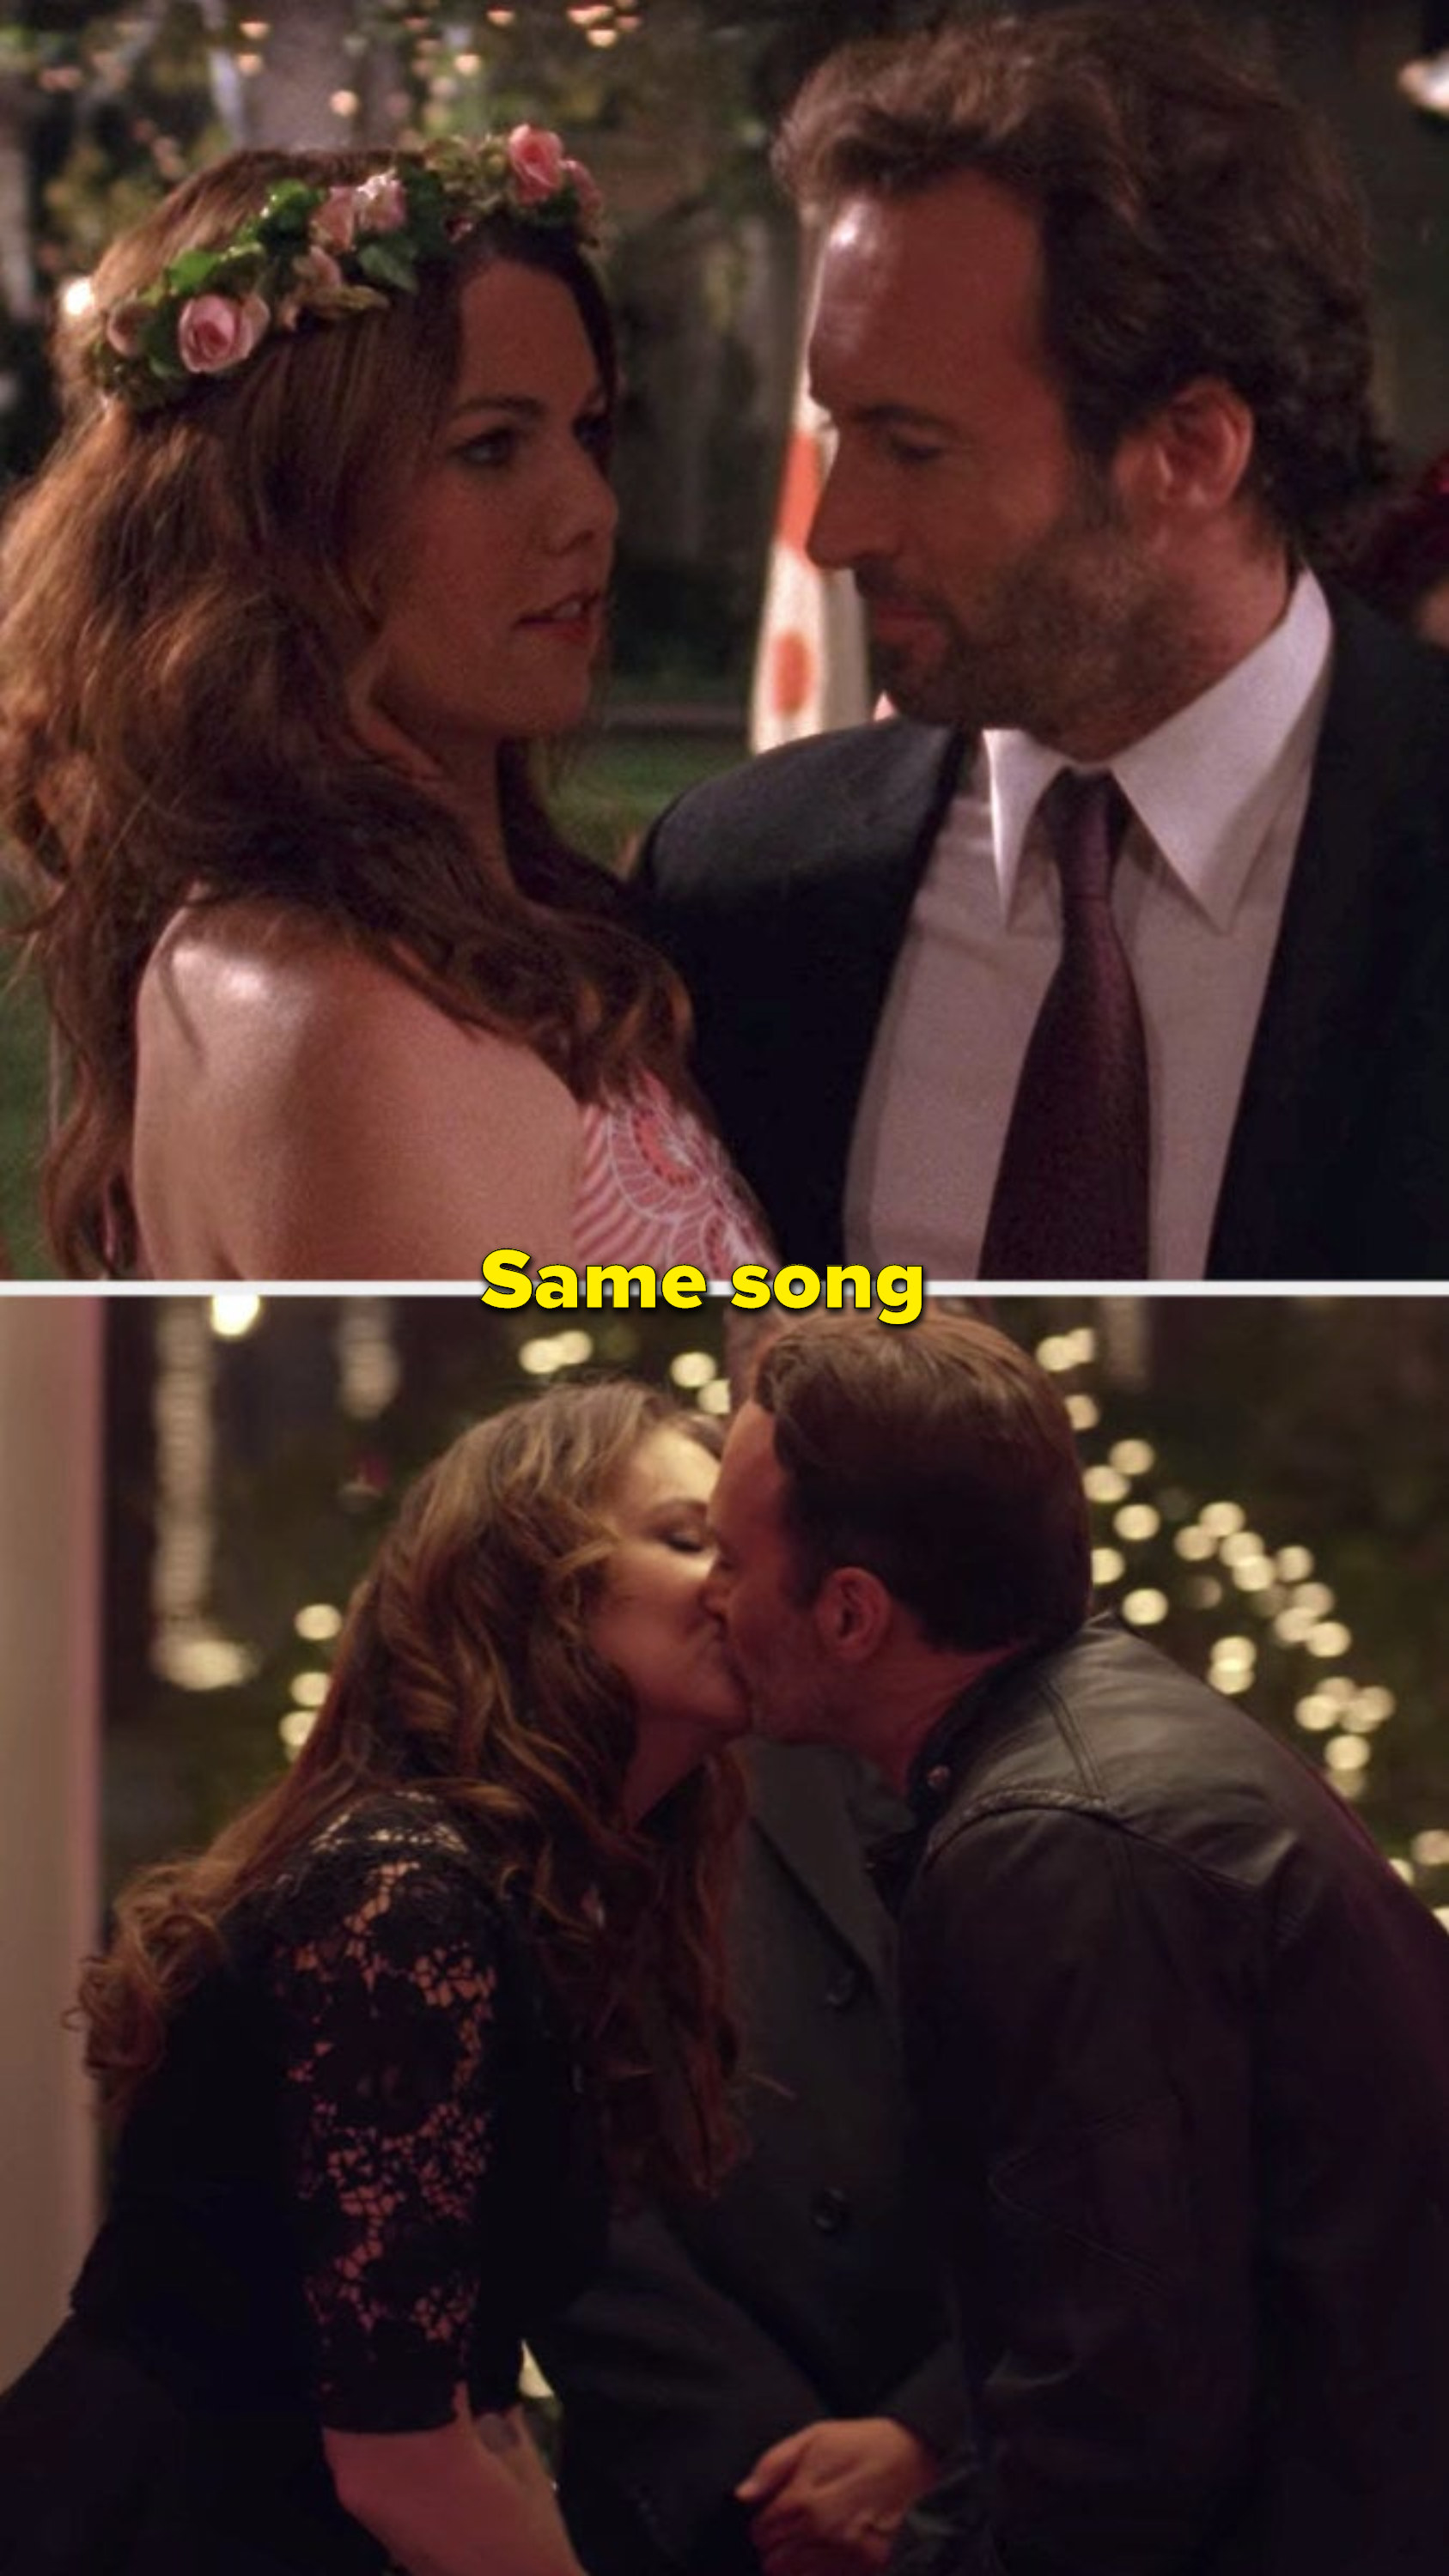 The same places when Lorelai and Luke dance and at their wedding